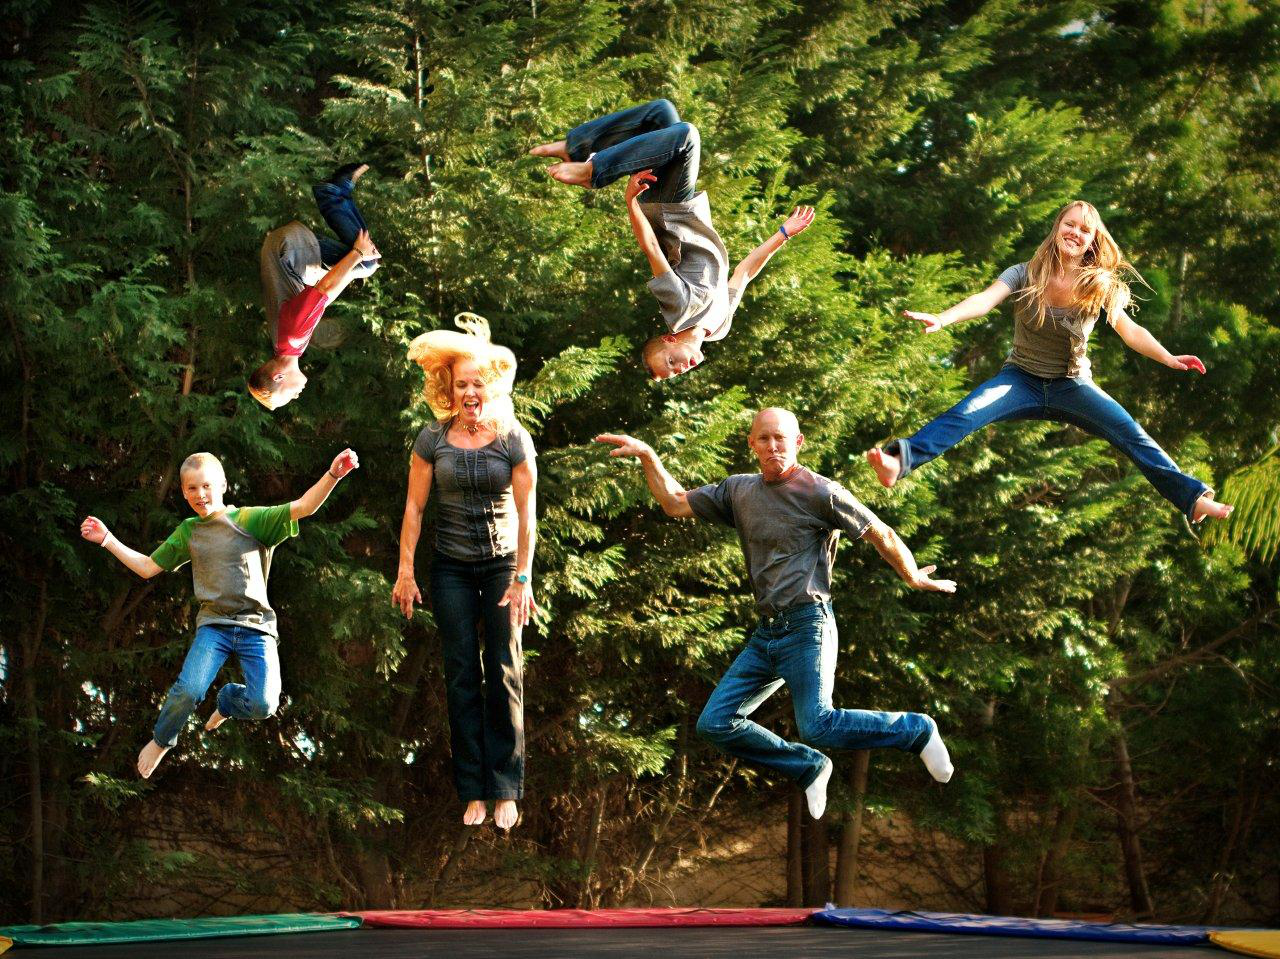 Bouncing for Joy – Why Trampoline Parks are the Perfect Family Activity